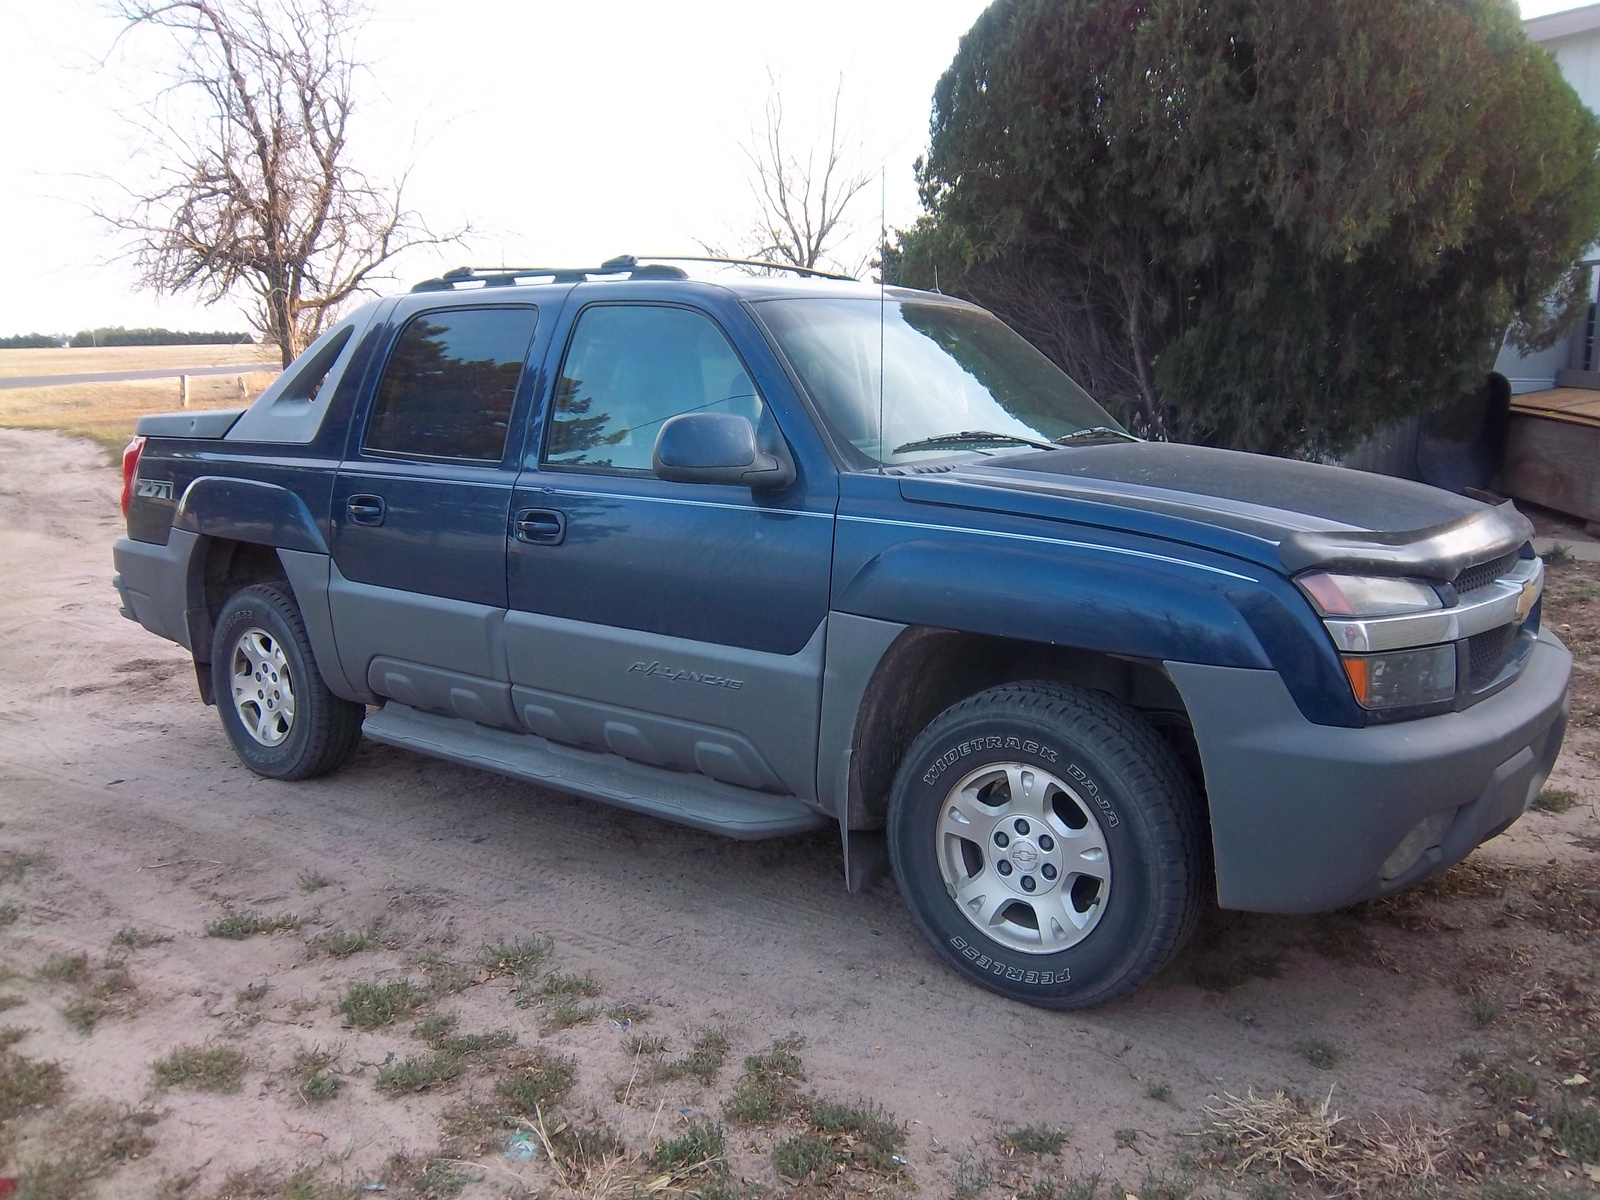 Chevy Avalanche Thoughts Yay or Nay What sayeth the hive